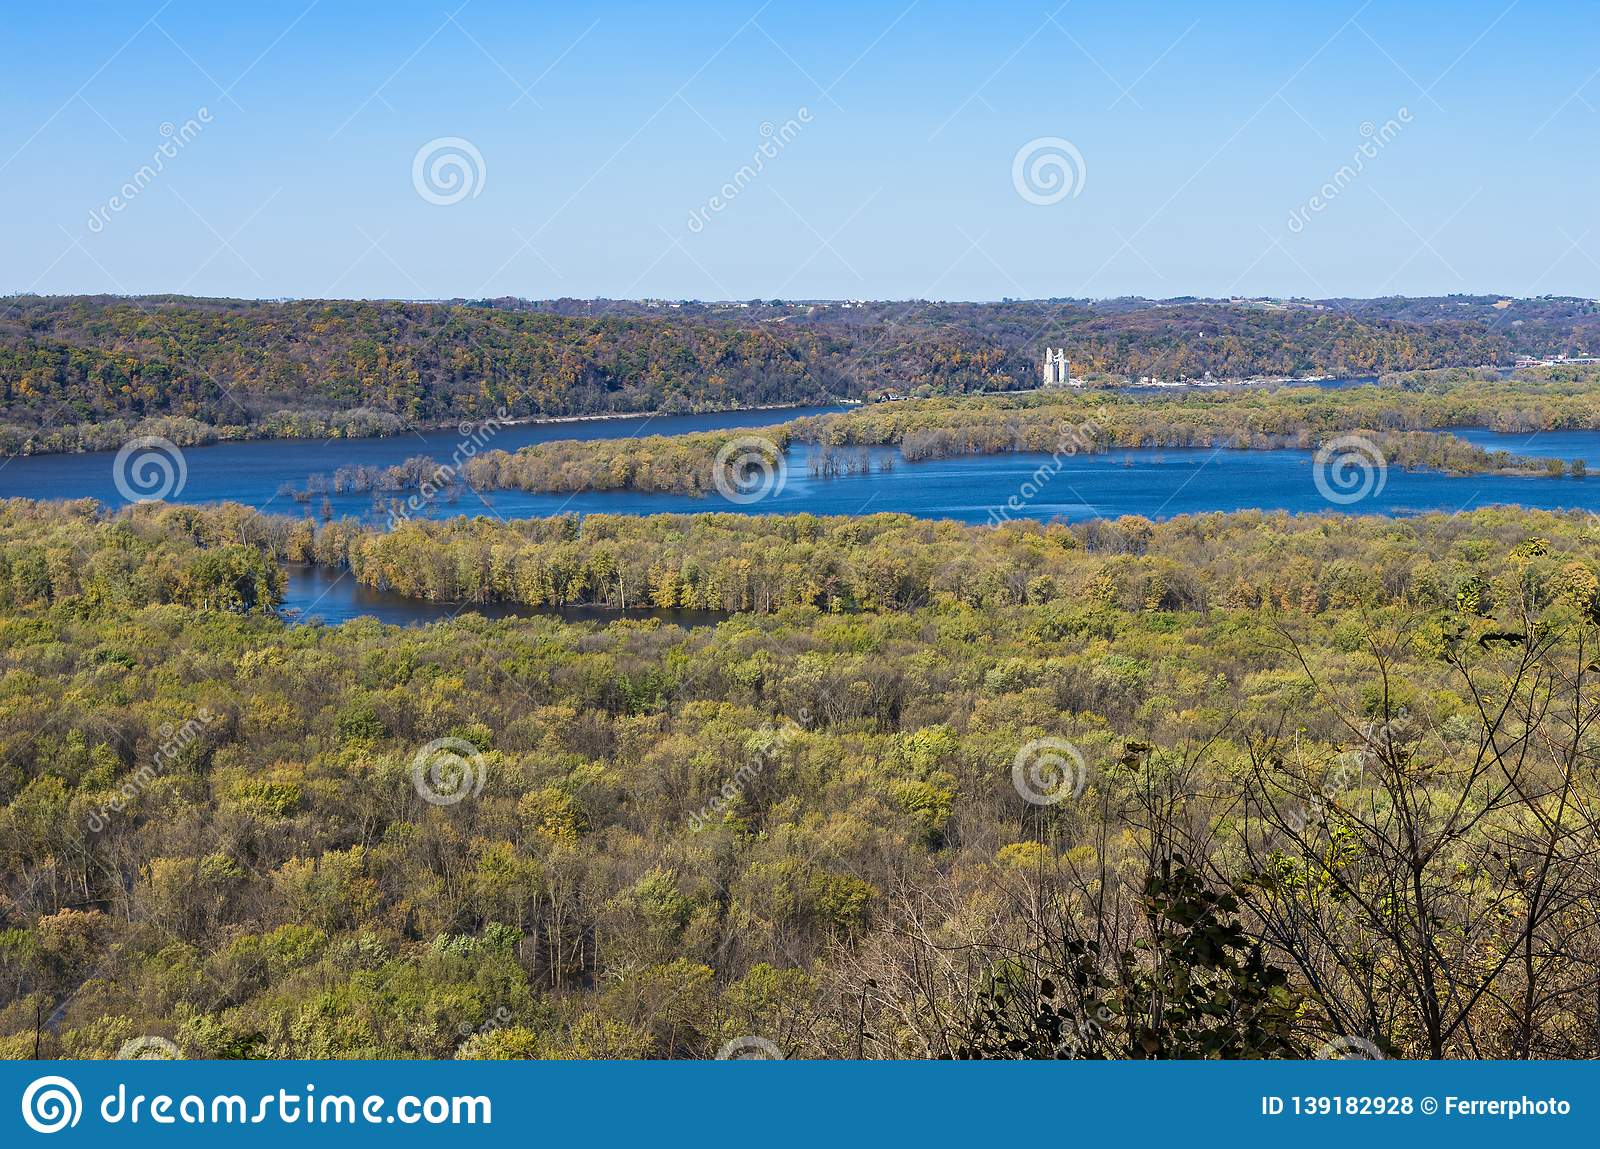 Wisconsin and Mississippi Rivers Confluence at Wyalusing